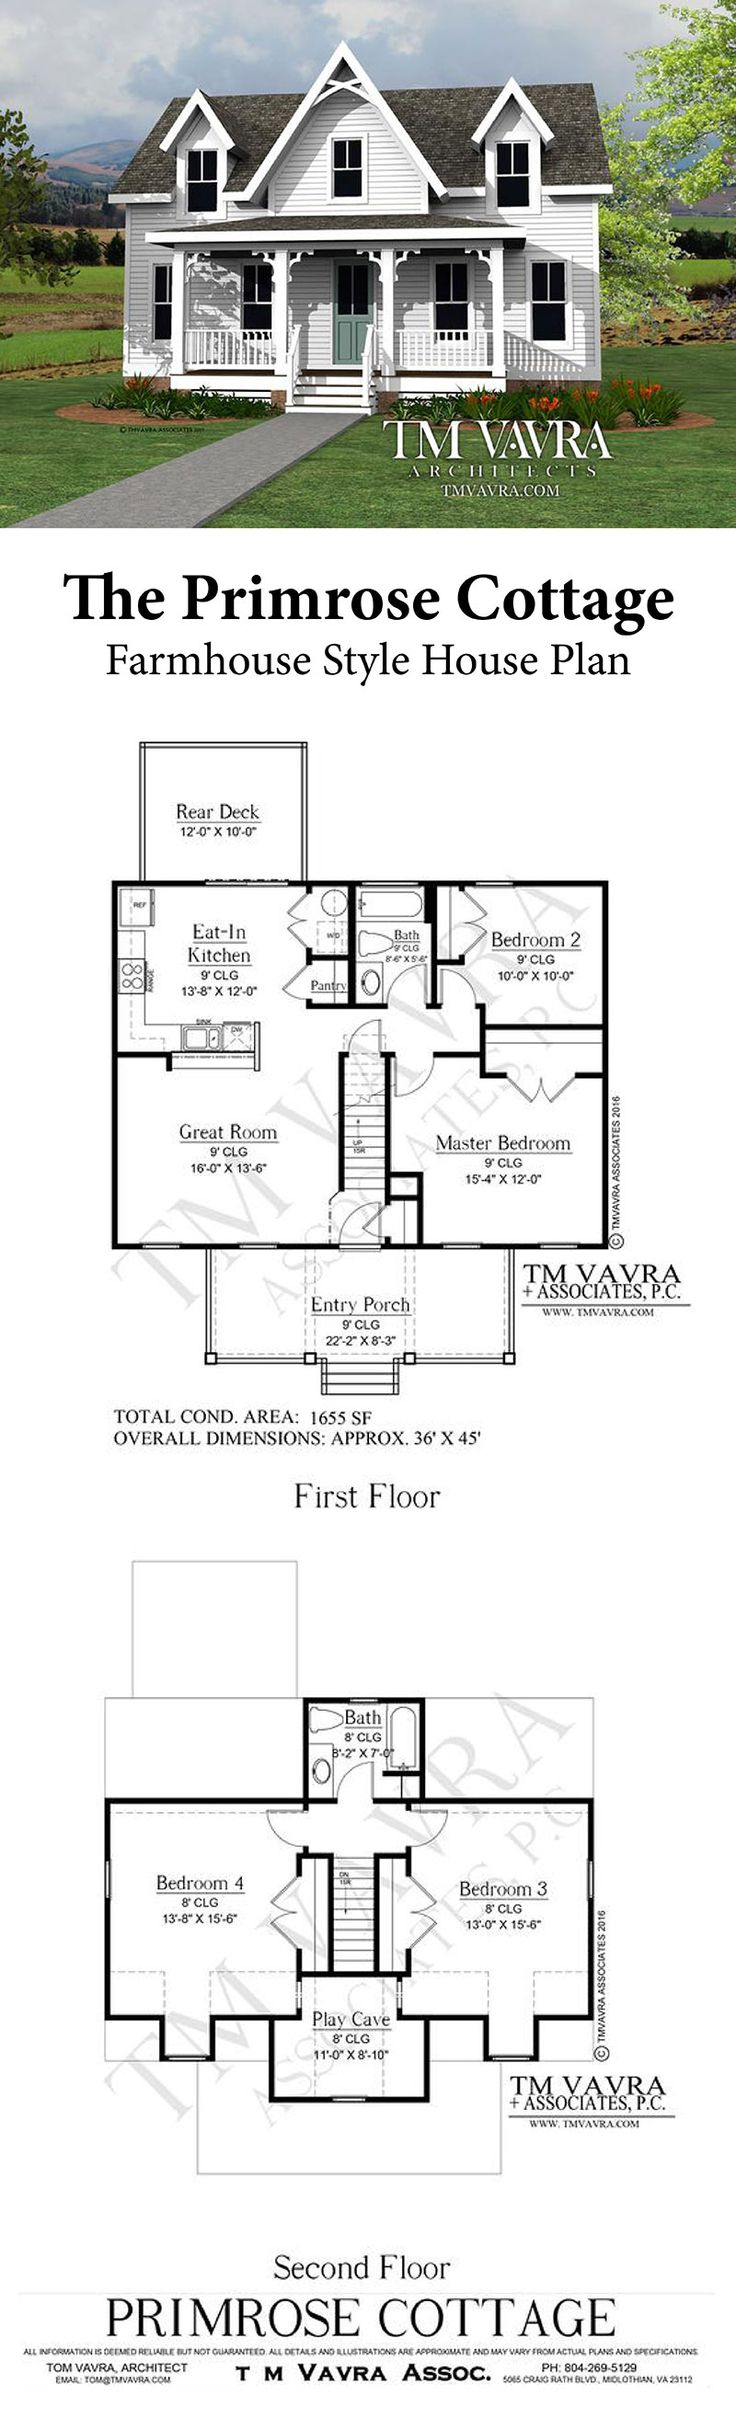 The Primrose Cottage house plan is a charming home design that fits all your needs in less than 2,000 sq. feet!  The master and second bedrooms are easily accessible on the first floor, while two large bedrooms and a play area upstairs will be perfect for the kids. The extra counter space and bar area in the kitchen make this home great for entertaining. You can enjoy the summer breeze on either the covered front porch or the rear deck. We are happy to customize this home plan for your…